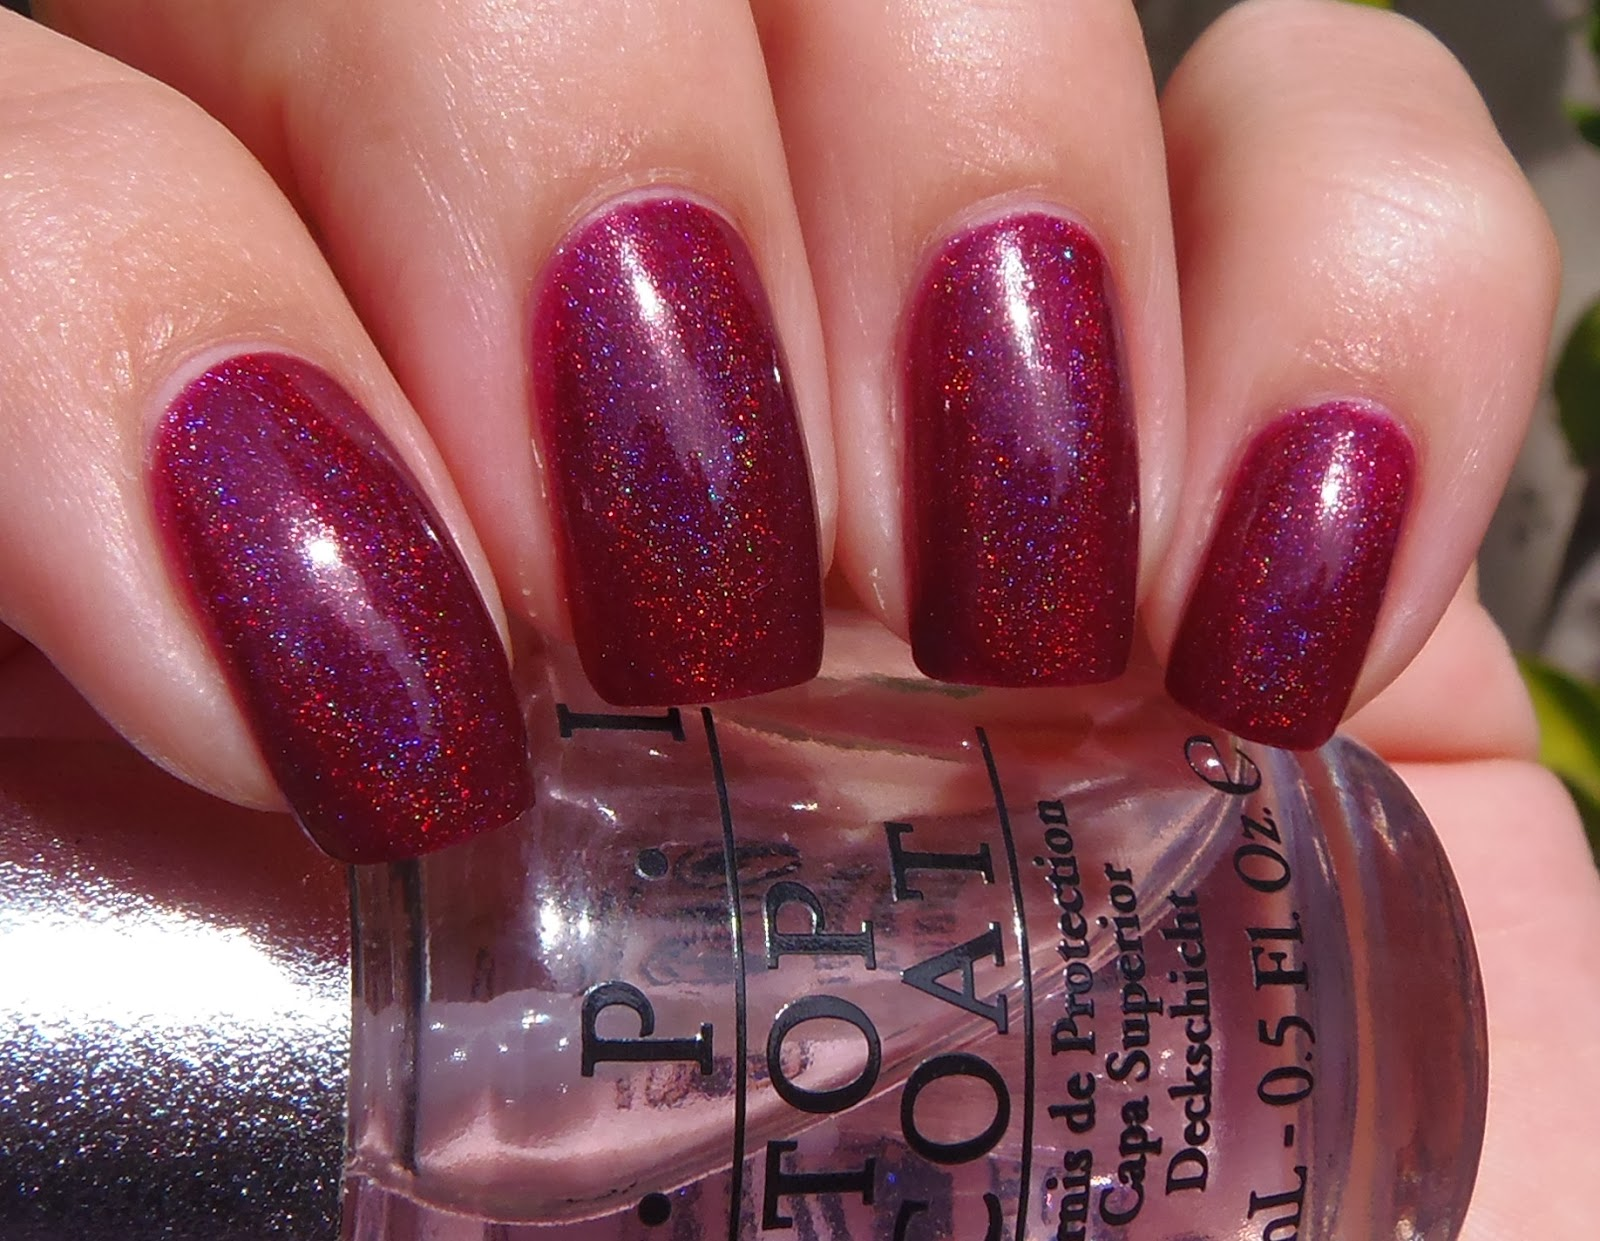 Opi Glitter Top Coat Nail Polish | Hession Hairdressing